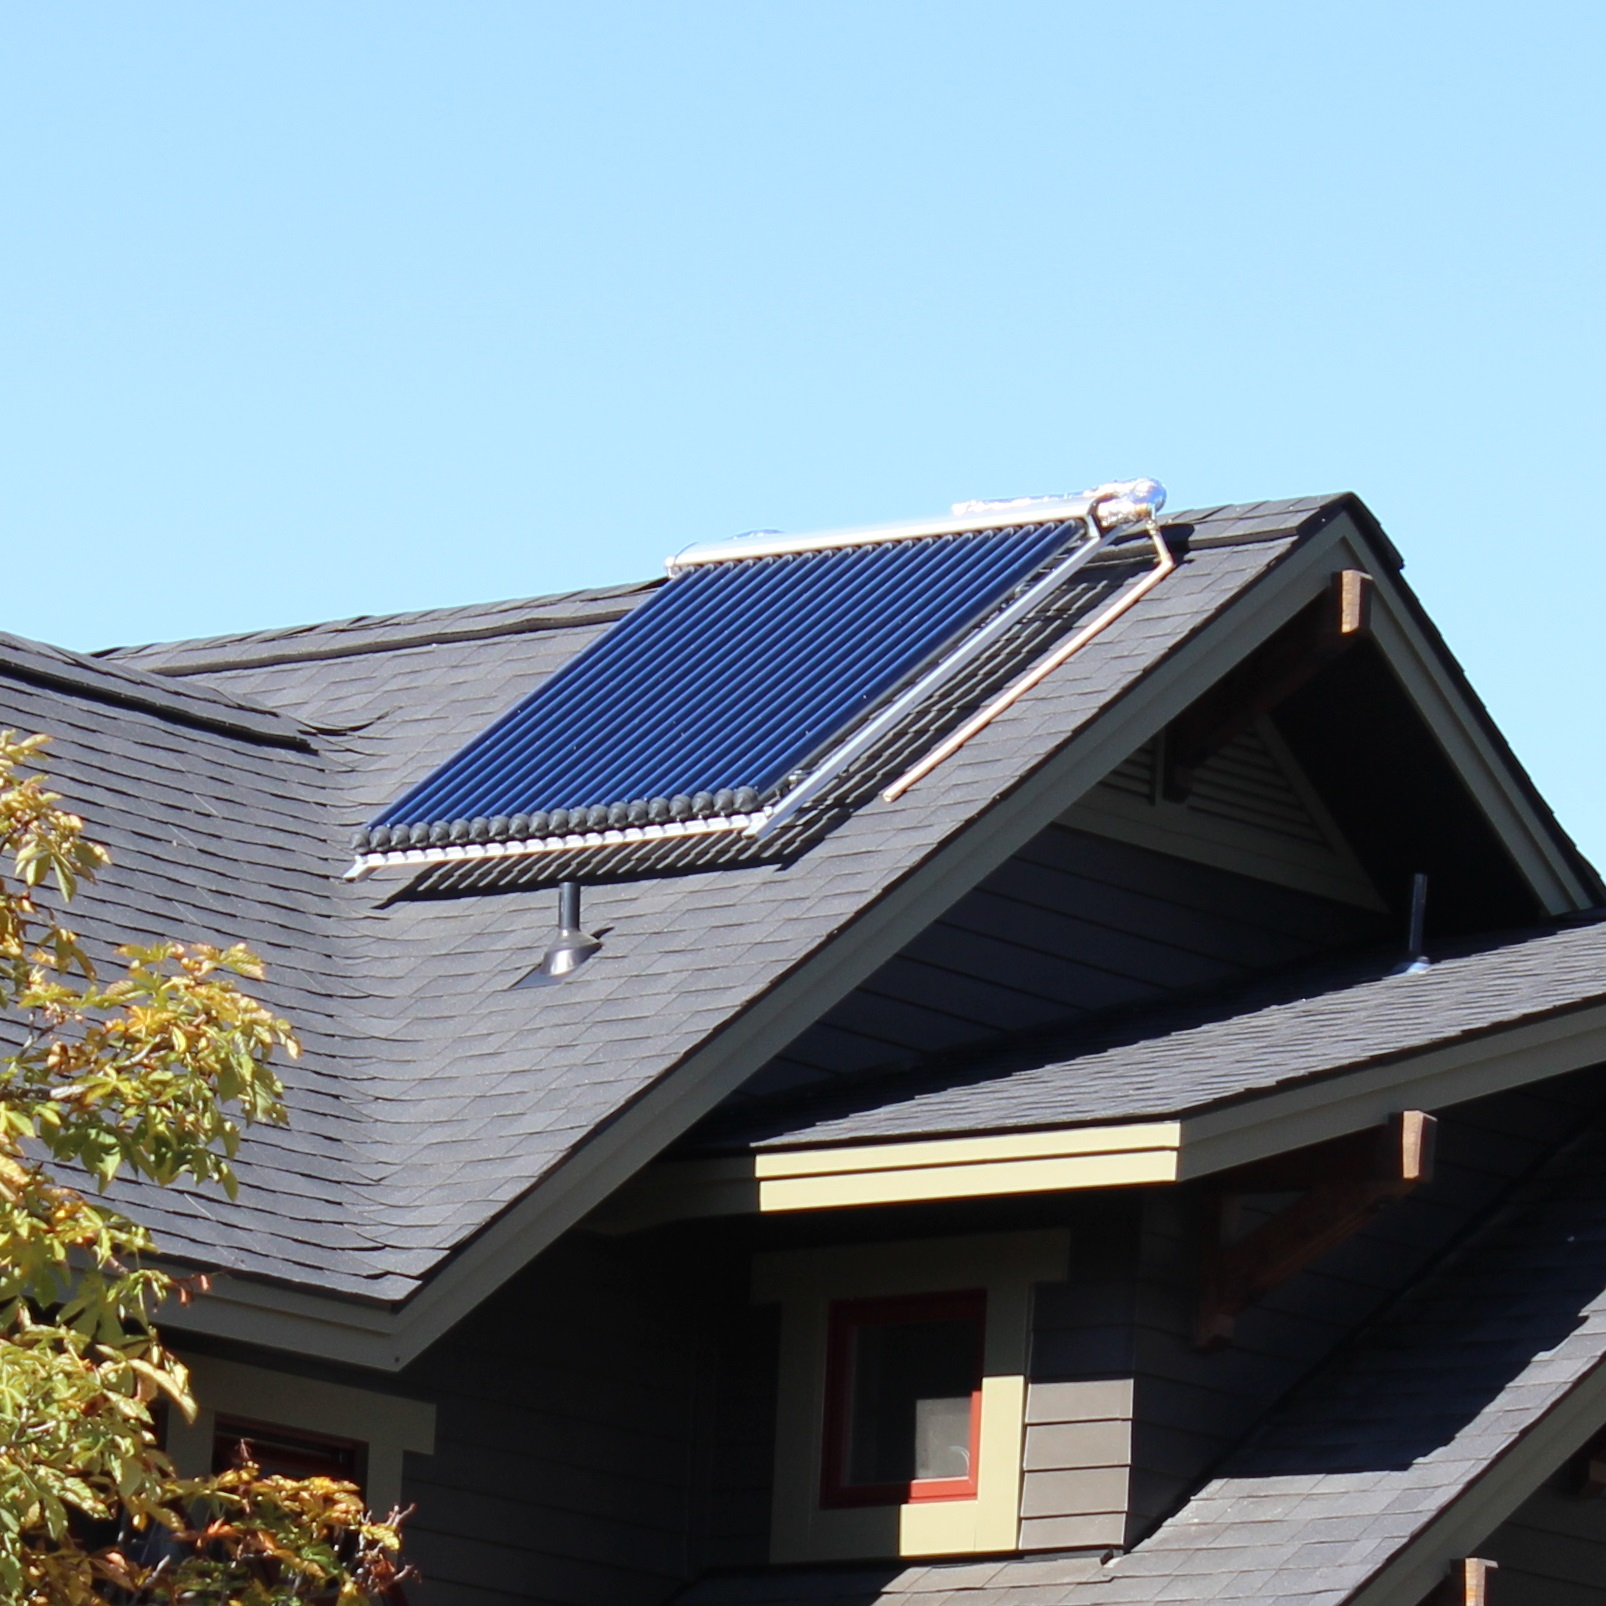 Click to calculate the best place to put your solar collector!